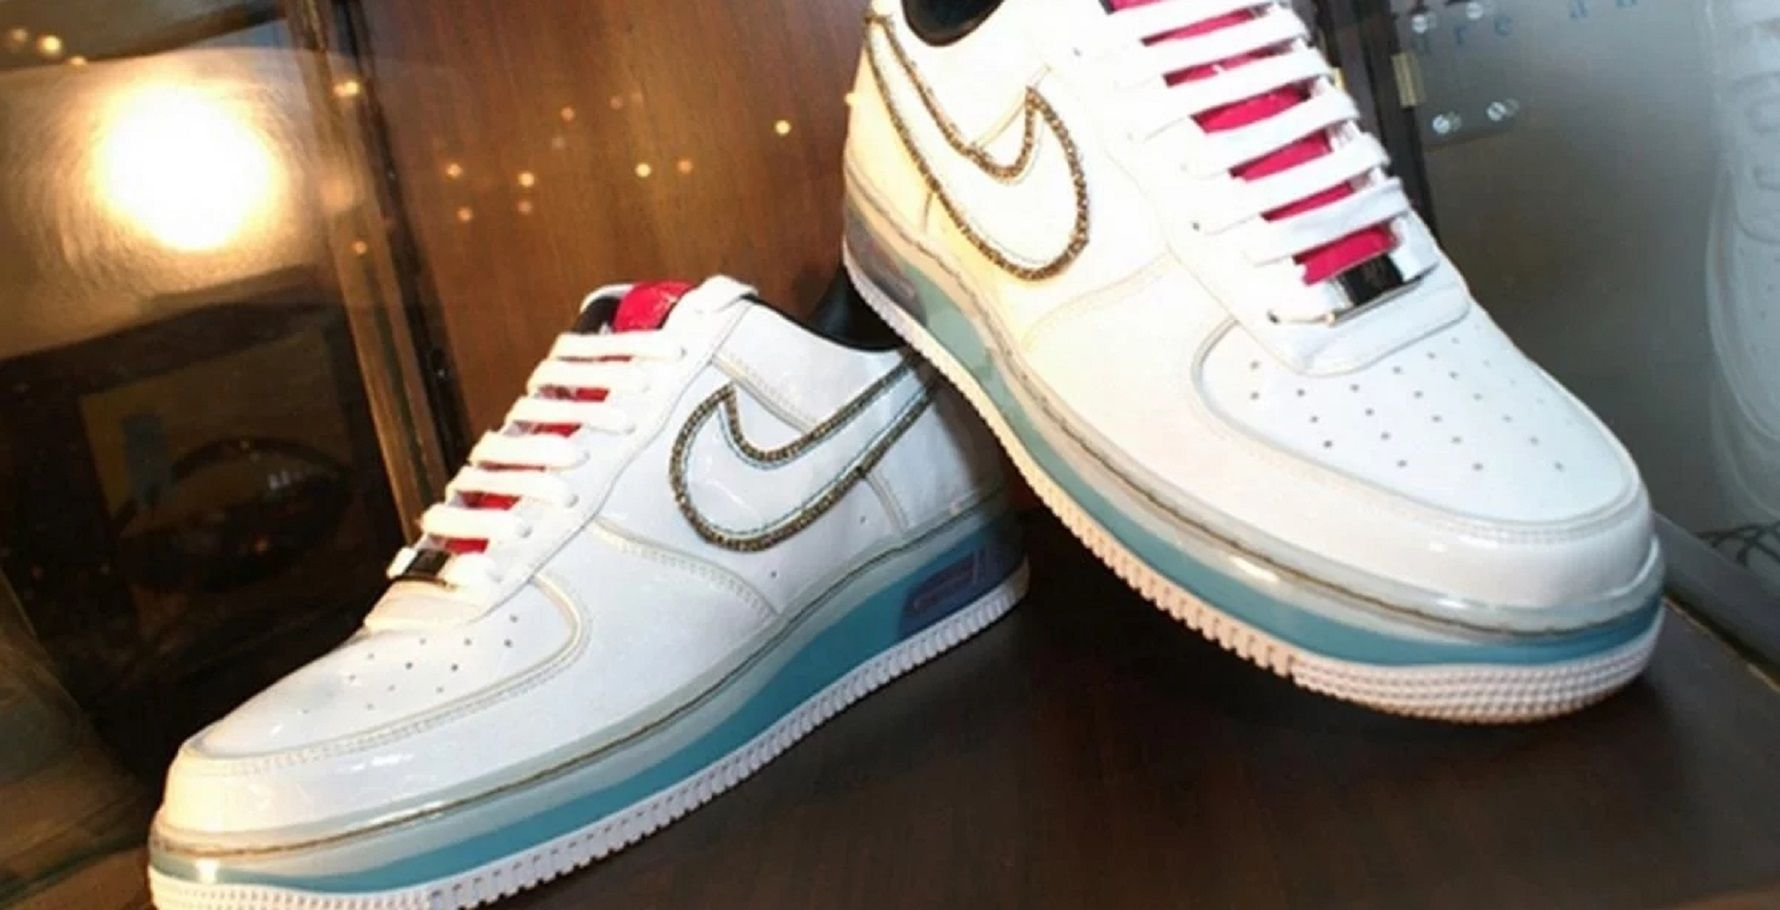 10 Most Expensive Shoes Made By Nike | TheRichest